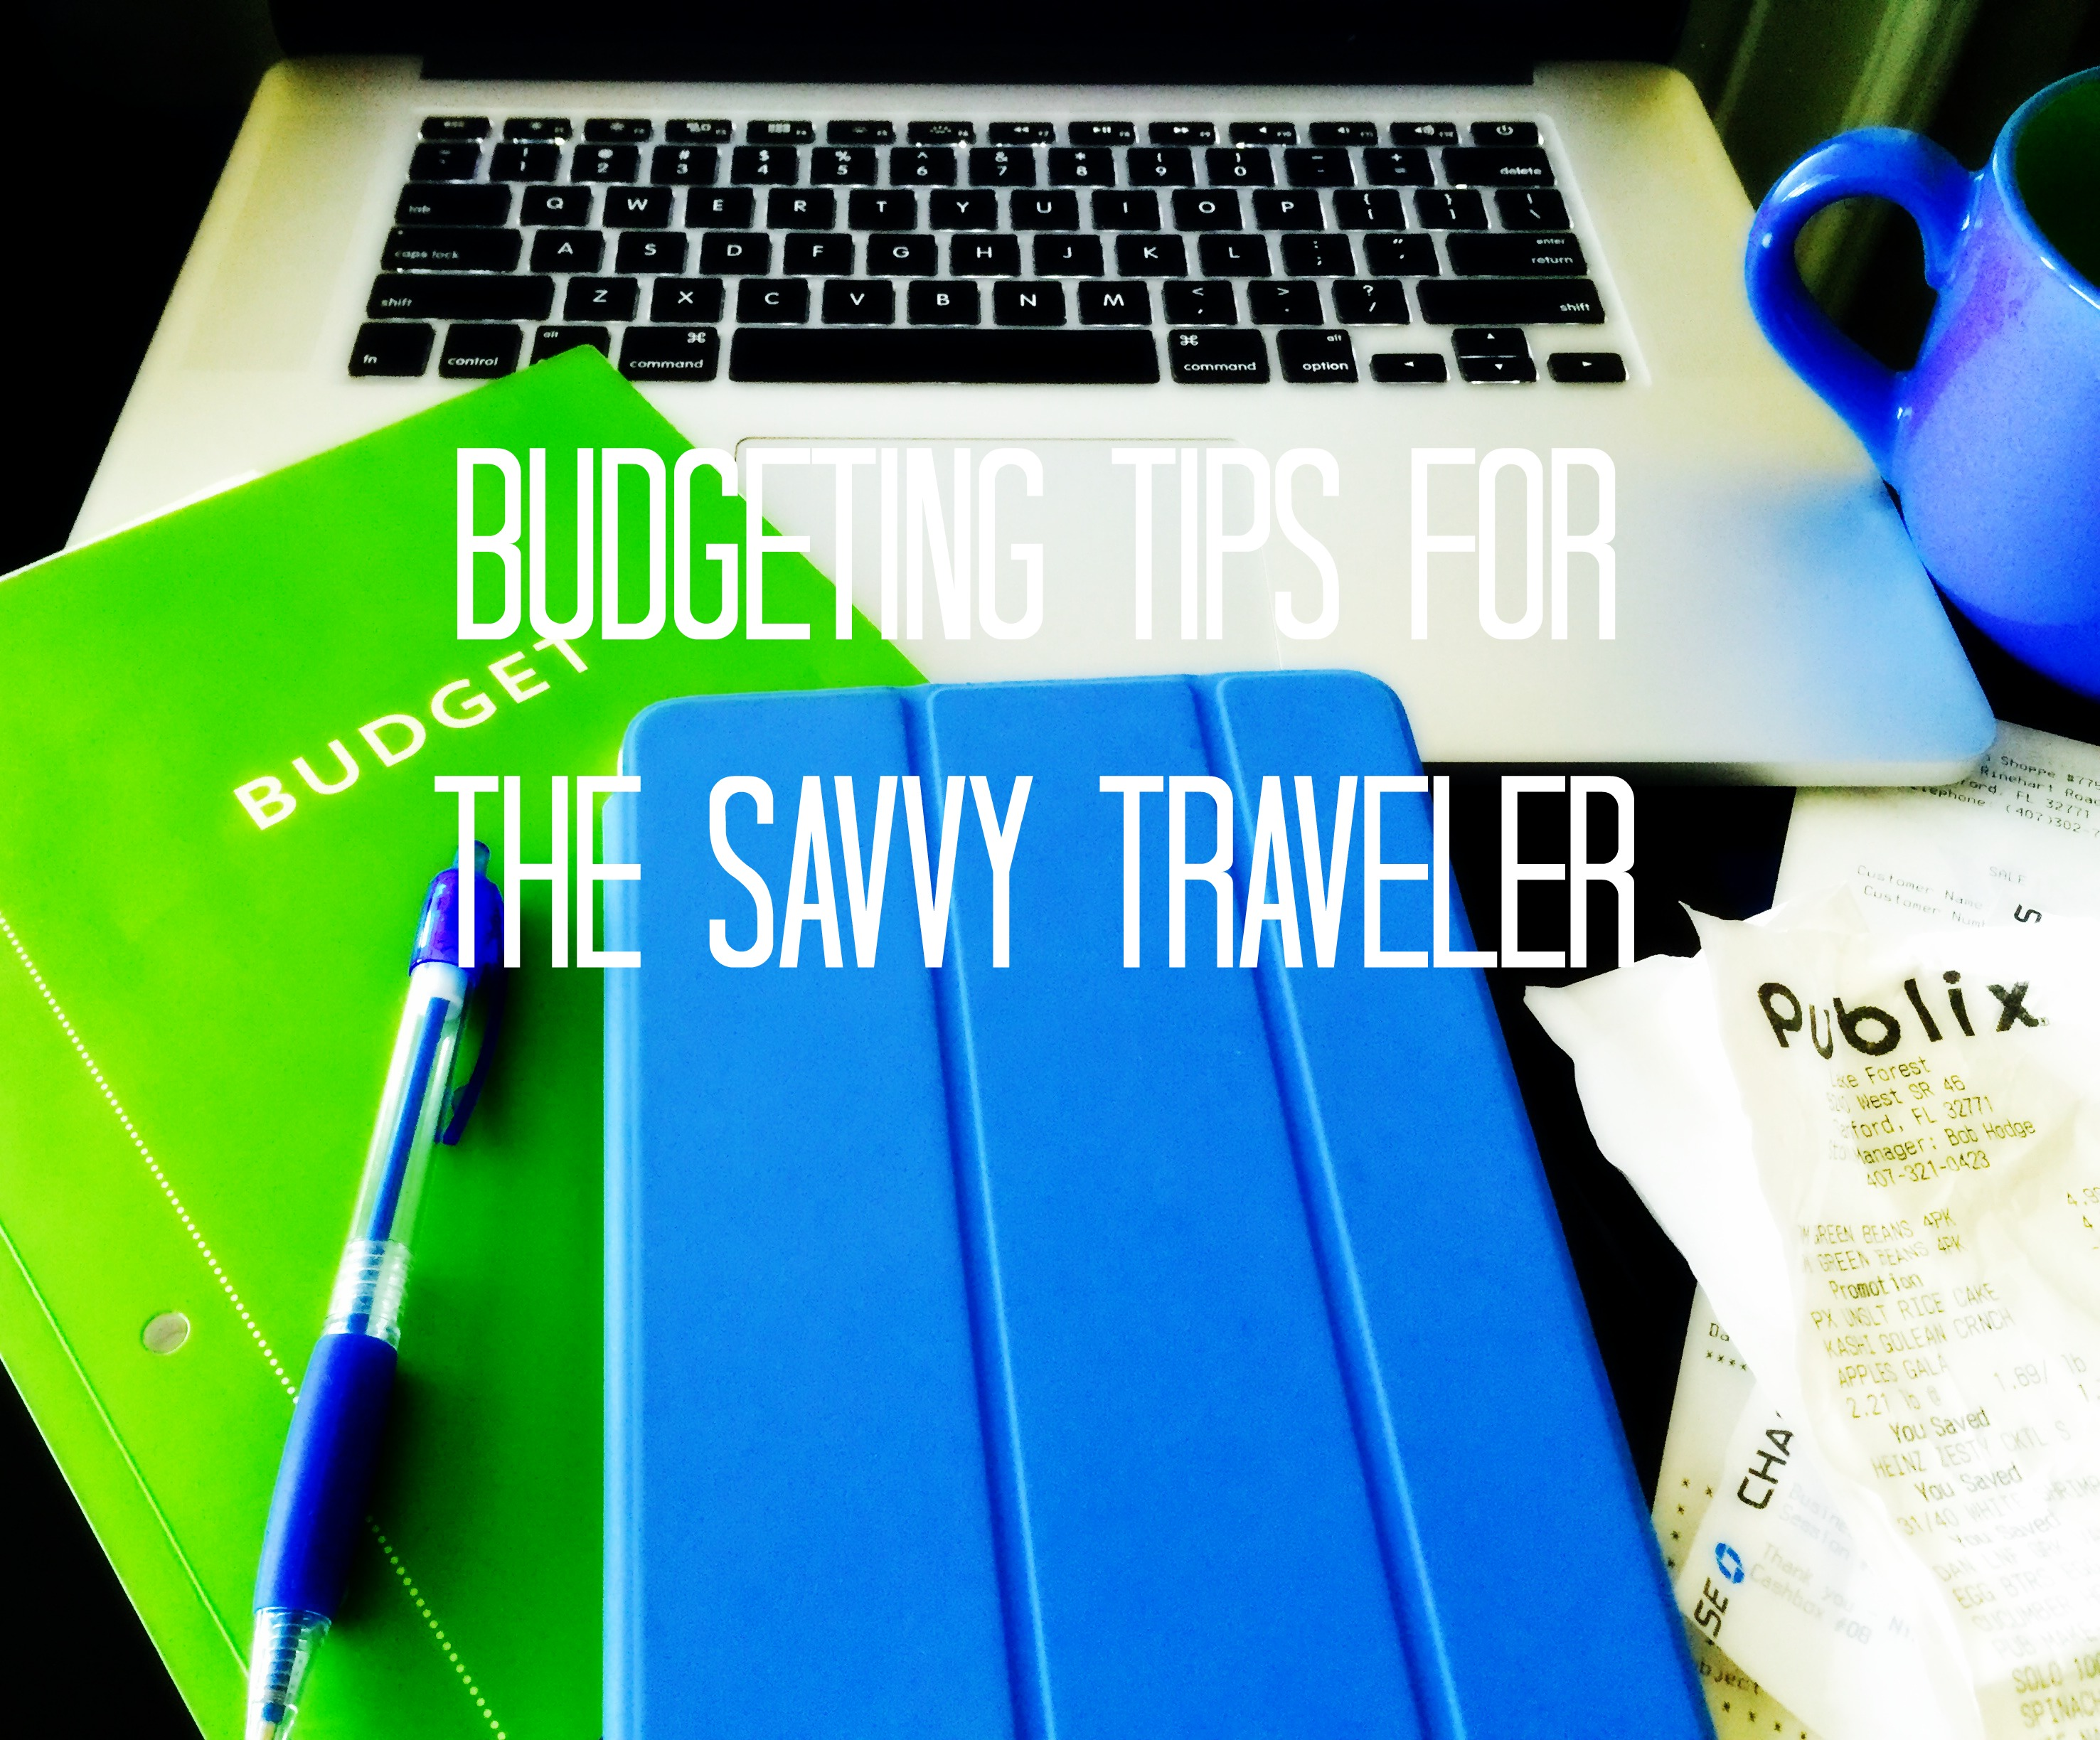 Budgeting Tips for the Savvy Traveler